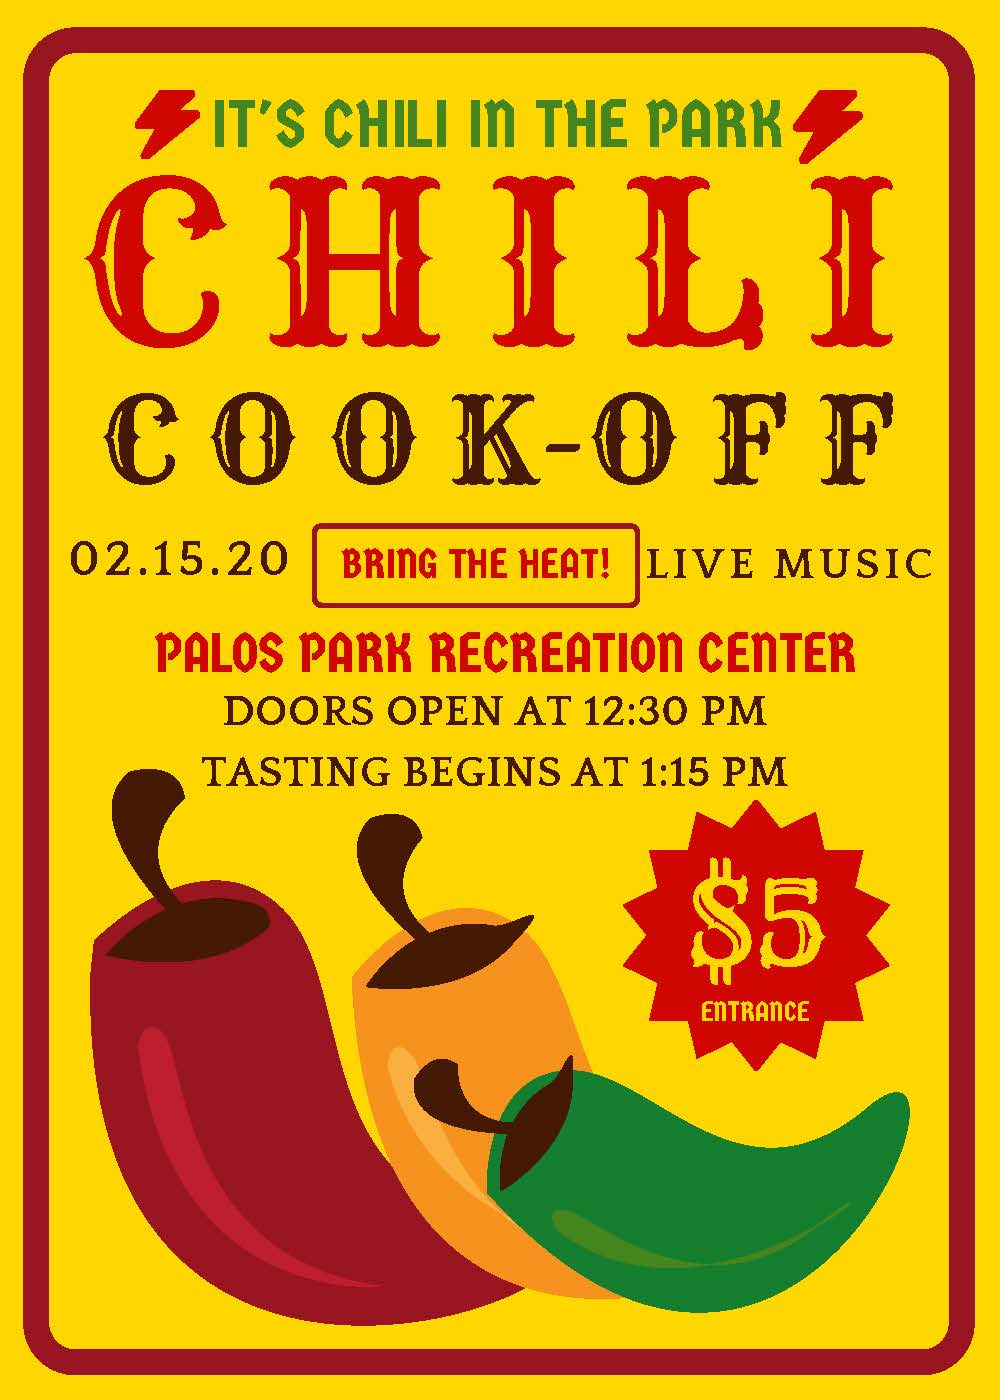 Chili Cook Off Event Flyer Opens in new window